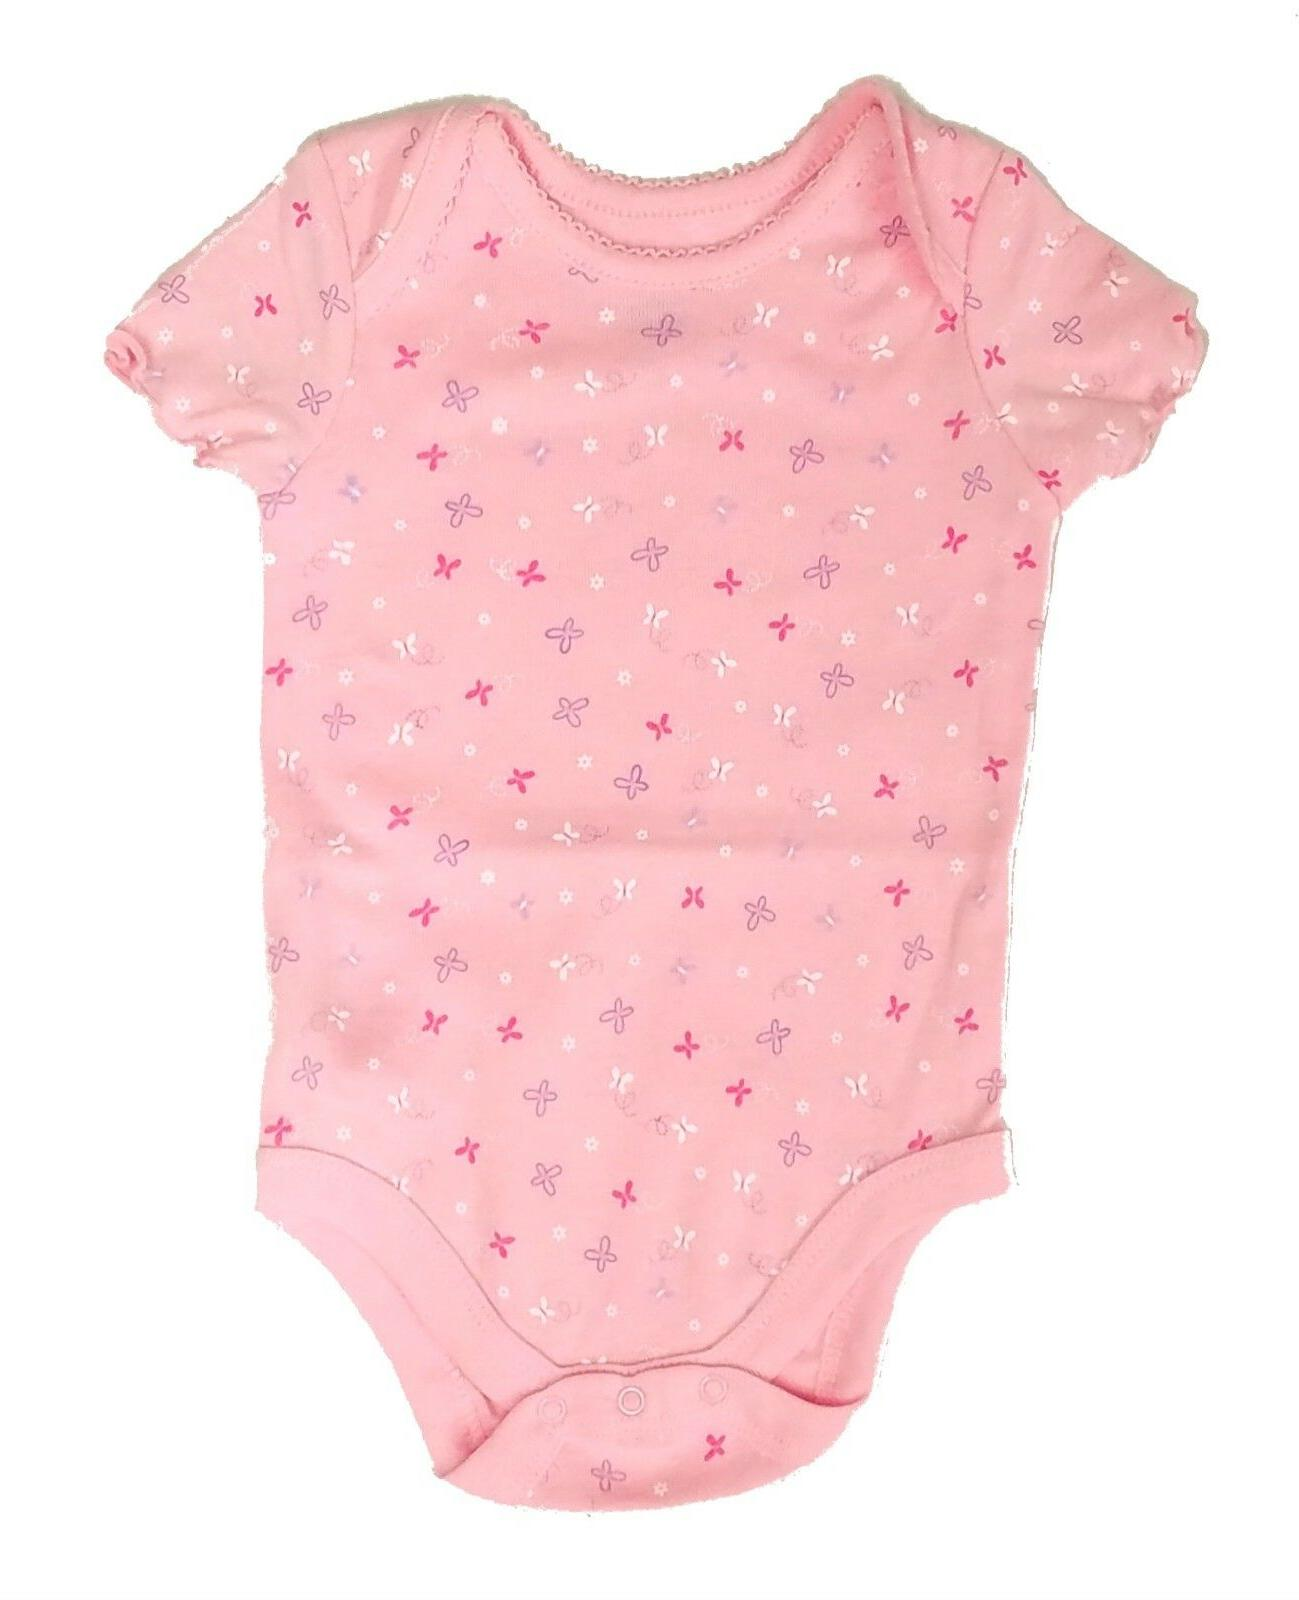 Bodysuit Baby Pack Pink Butterfly Months